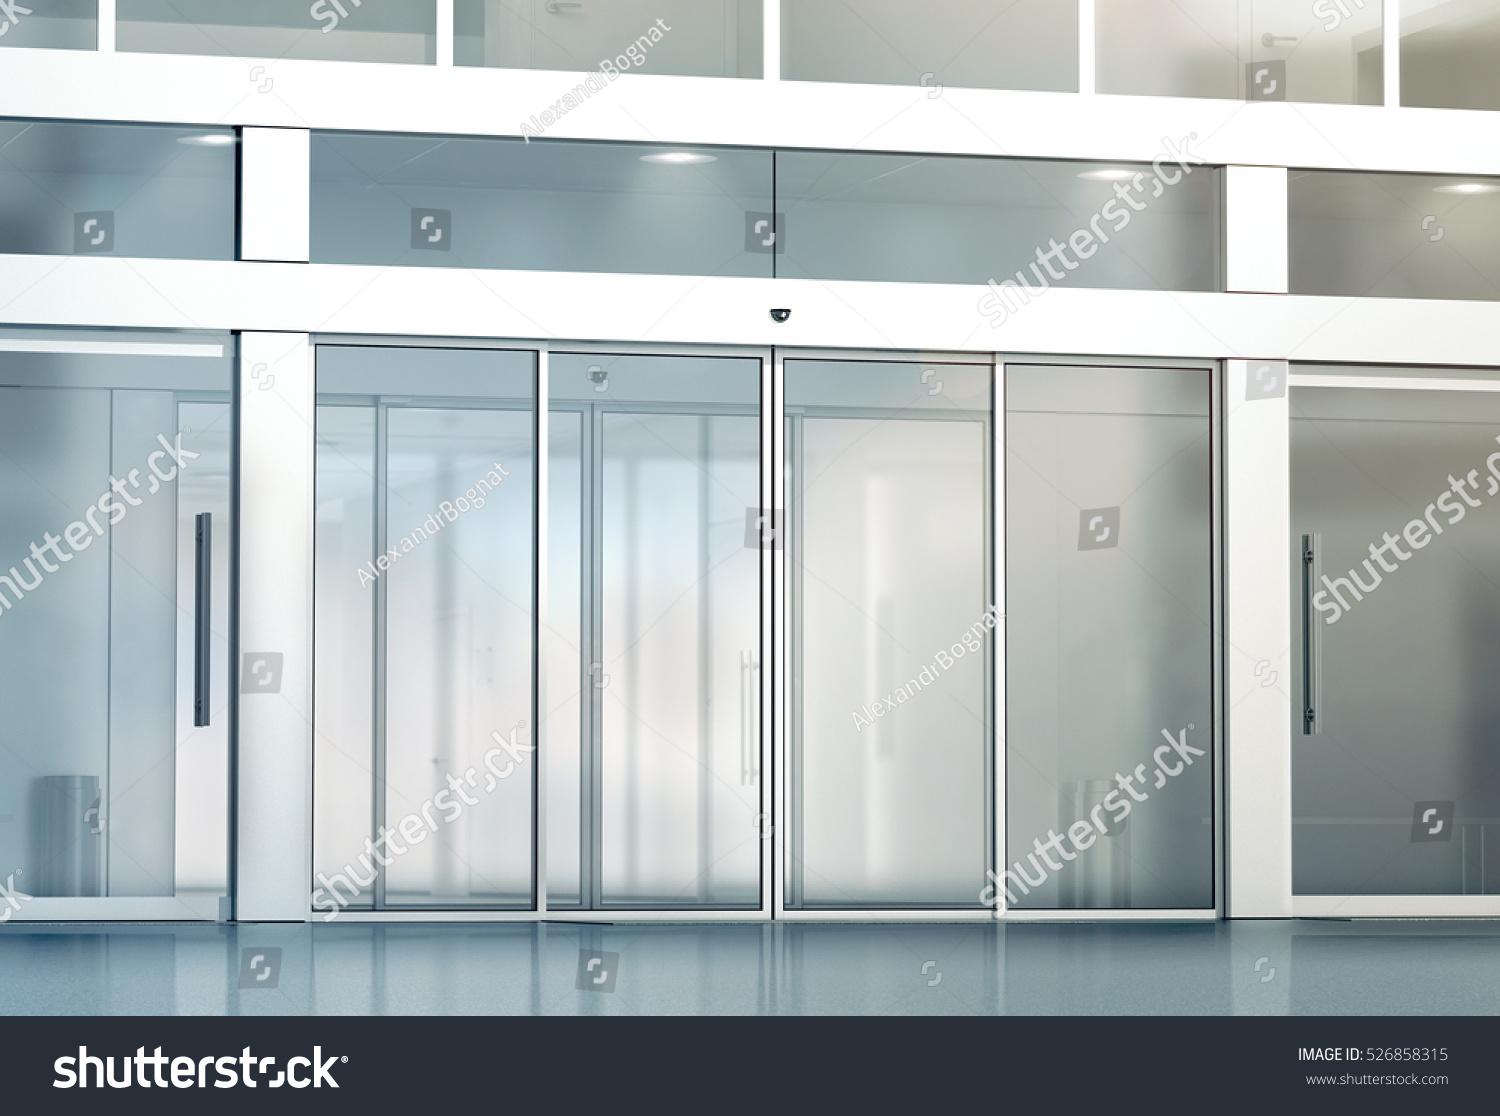 stock-photo-blank-sliding-glass-doors-entrance-mockup-d-rendering-commercial-automatic-entry-mock-up-office-526858315